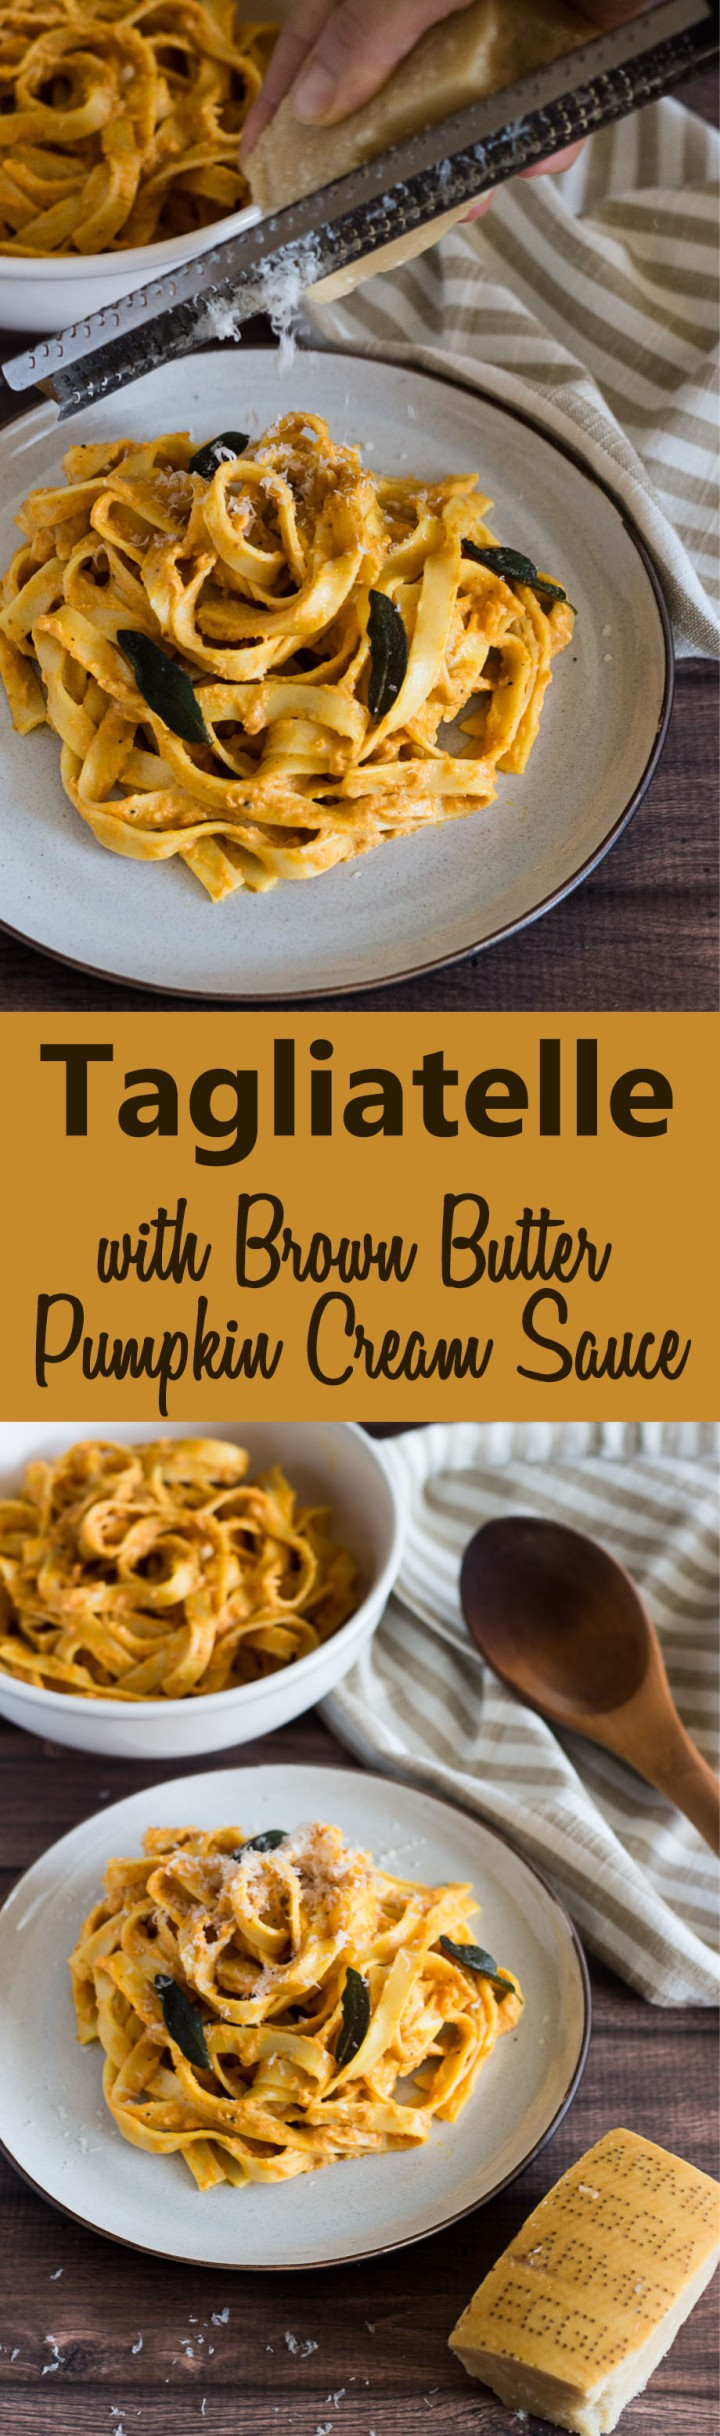 Tagliatelle with Brown Butter Pumpkin Cream Sauce and Fried Sage #pasta #pumpkin #vegetarian #cheese